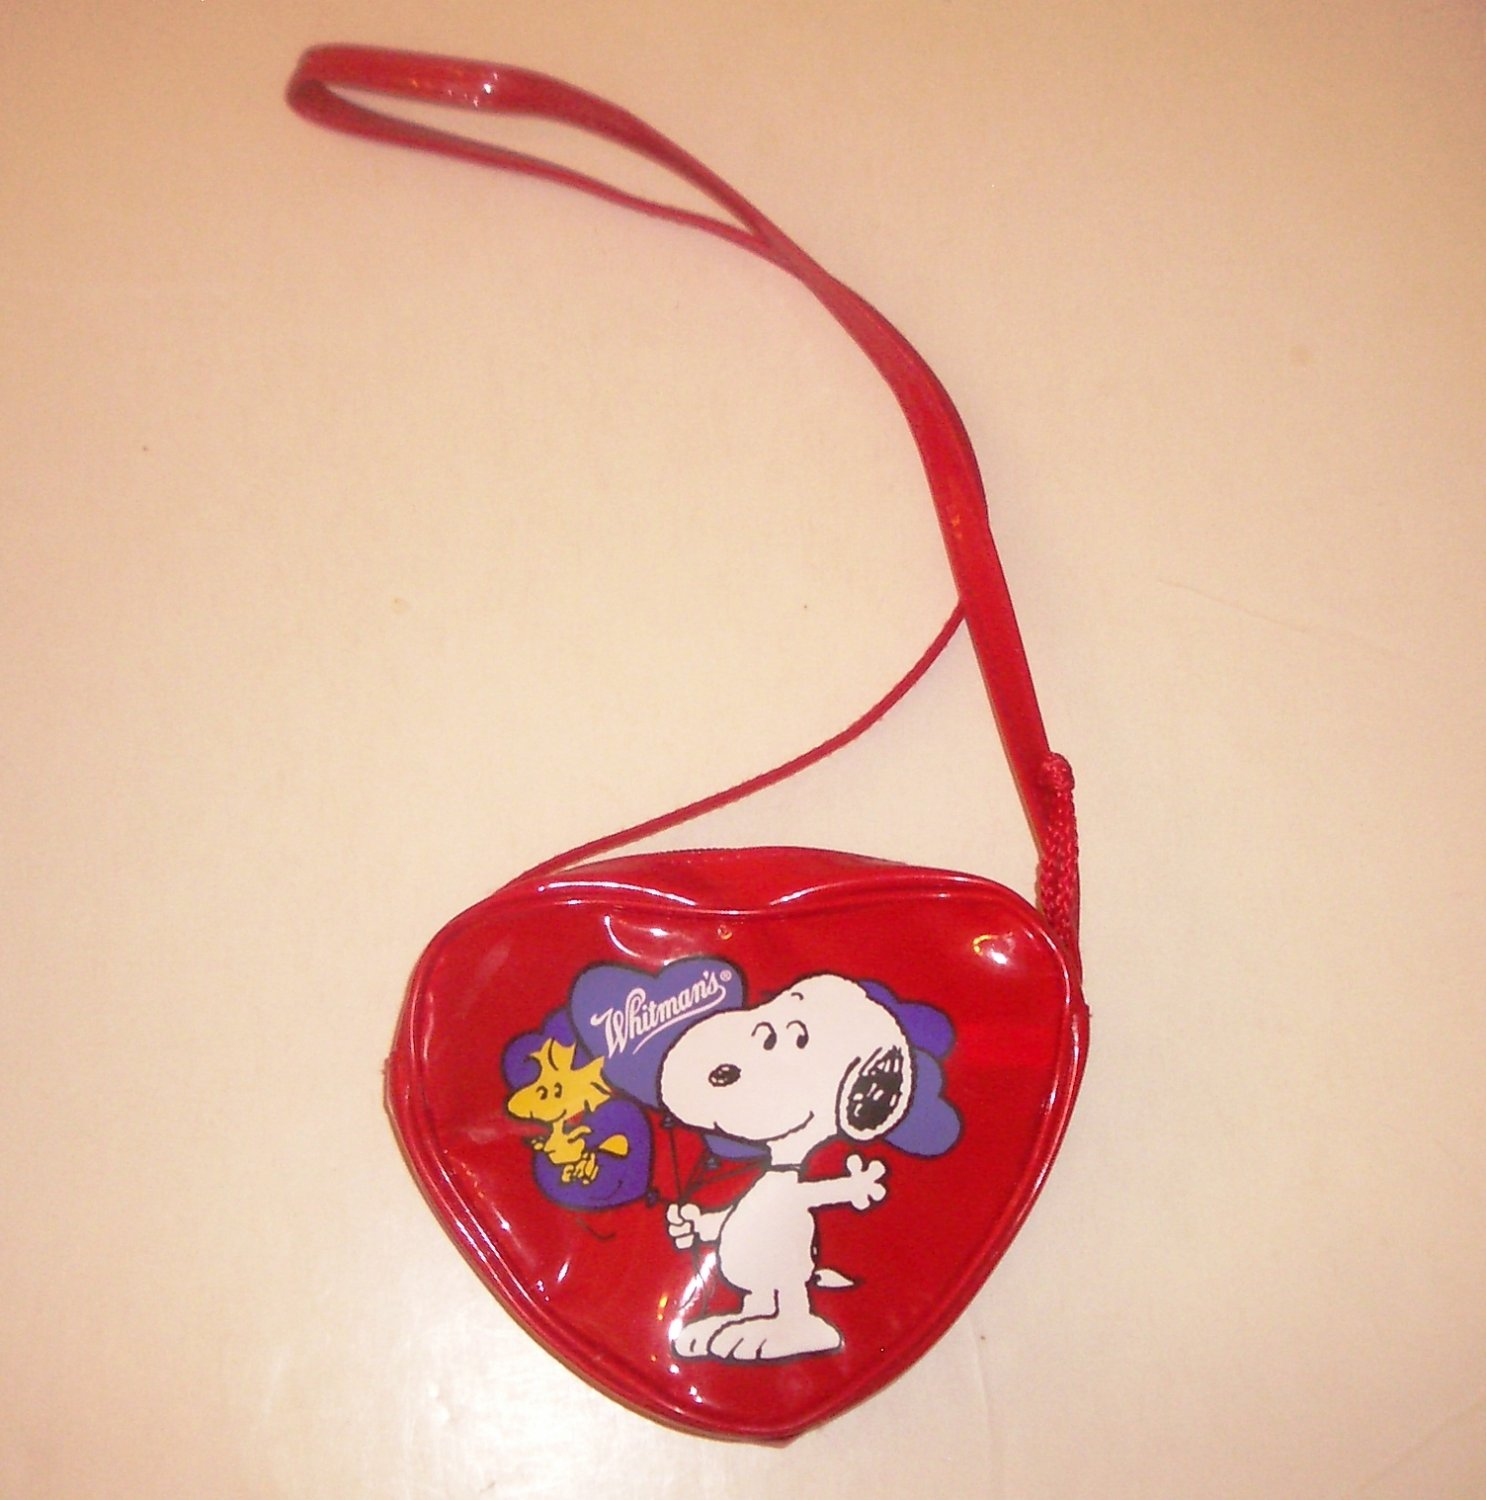 Snoopy and Woodstock Whitman's Collectible Promotional Plastic Heart Shaped Red Purse